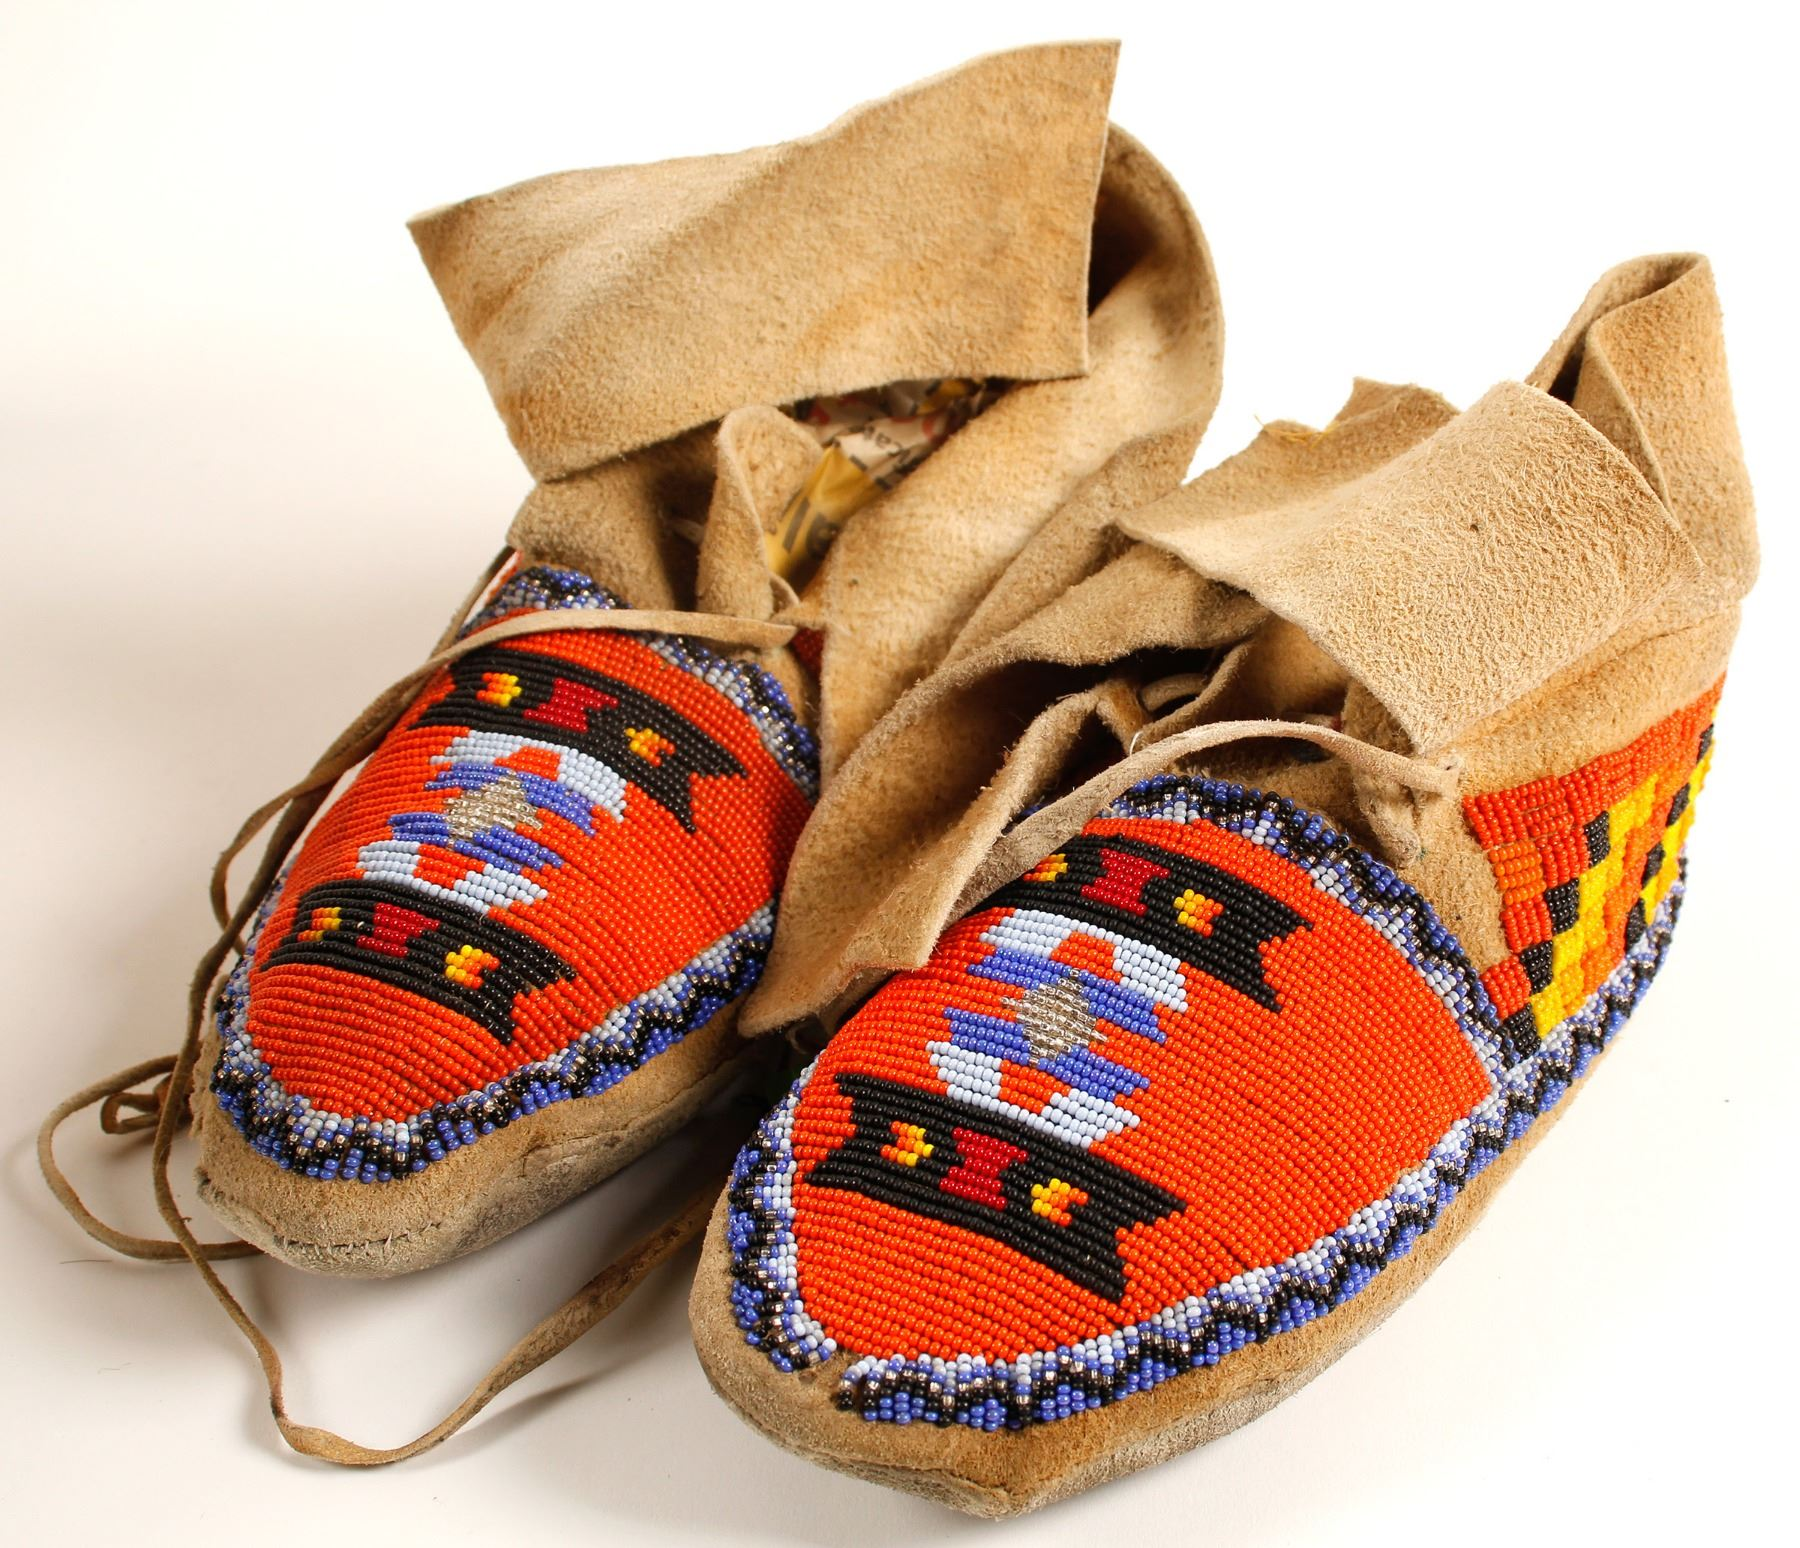 b25f0bd1d Loading zoom · Image 1 : Complex Beaded Moccasins (90623)